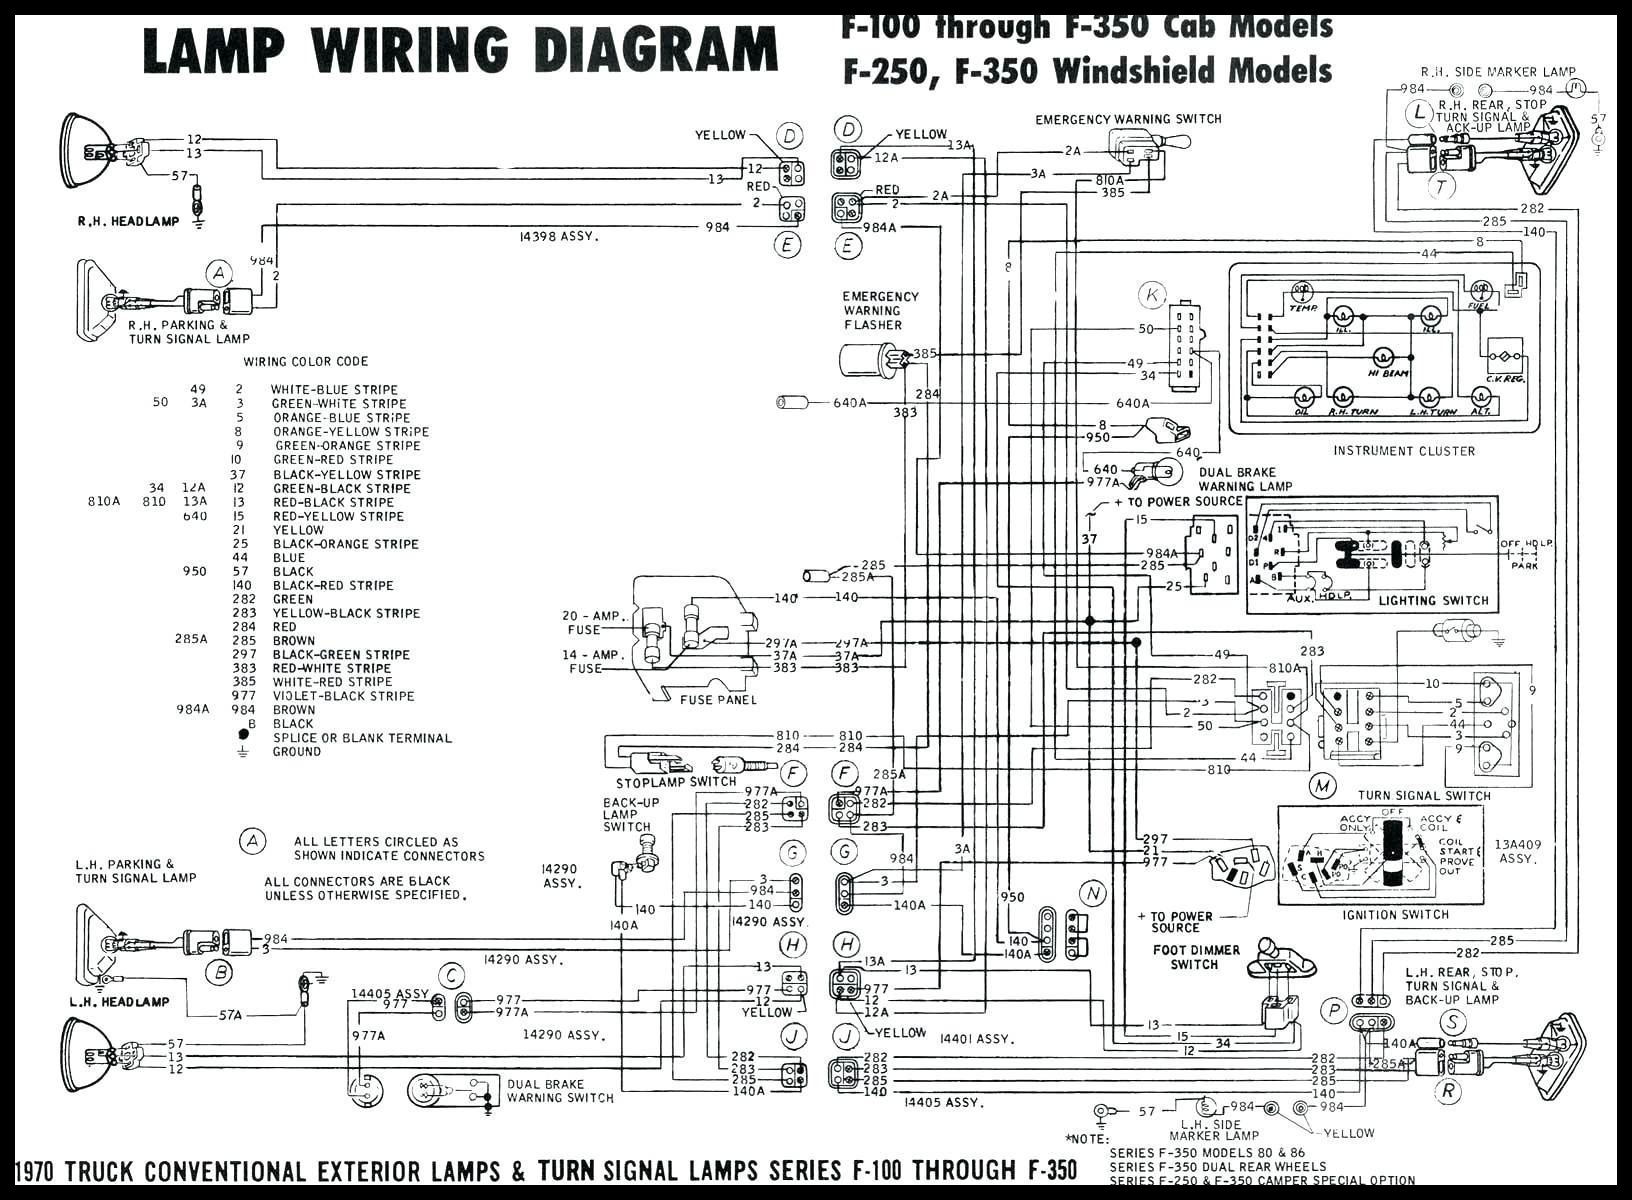 motorcycle ignition system wiring diagram best cab clearance lights rh yourproducthere co bmw motorcycle wiring color codes bmw motorcycle wiring diagram